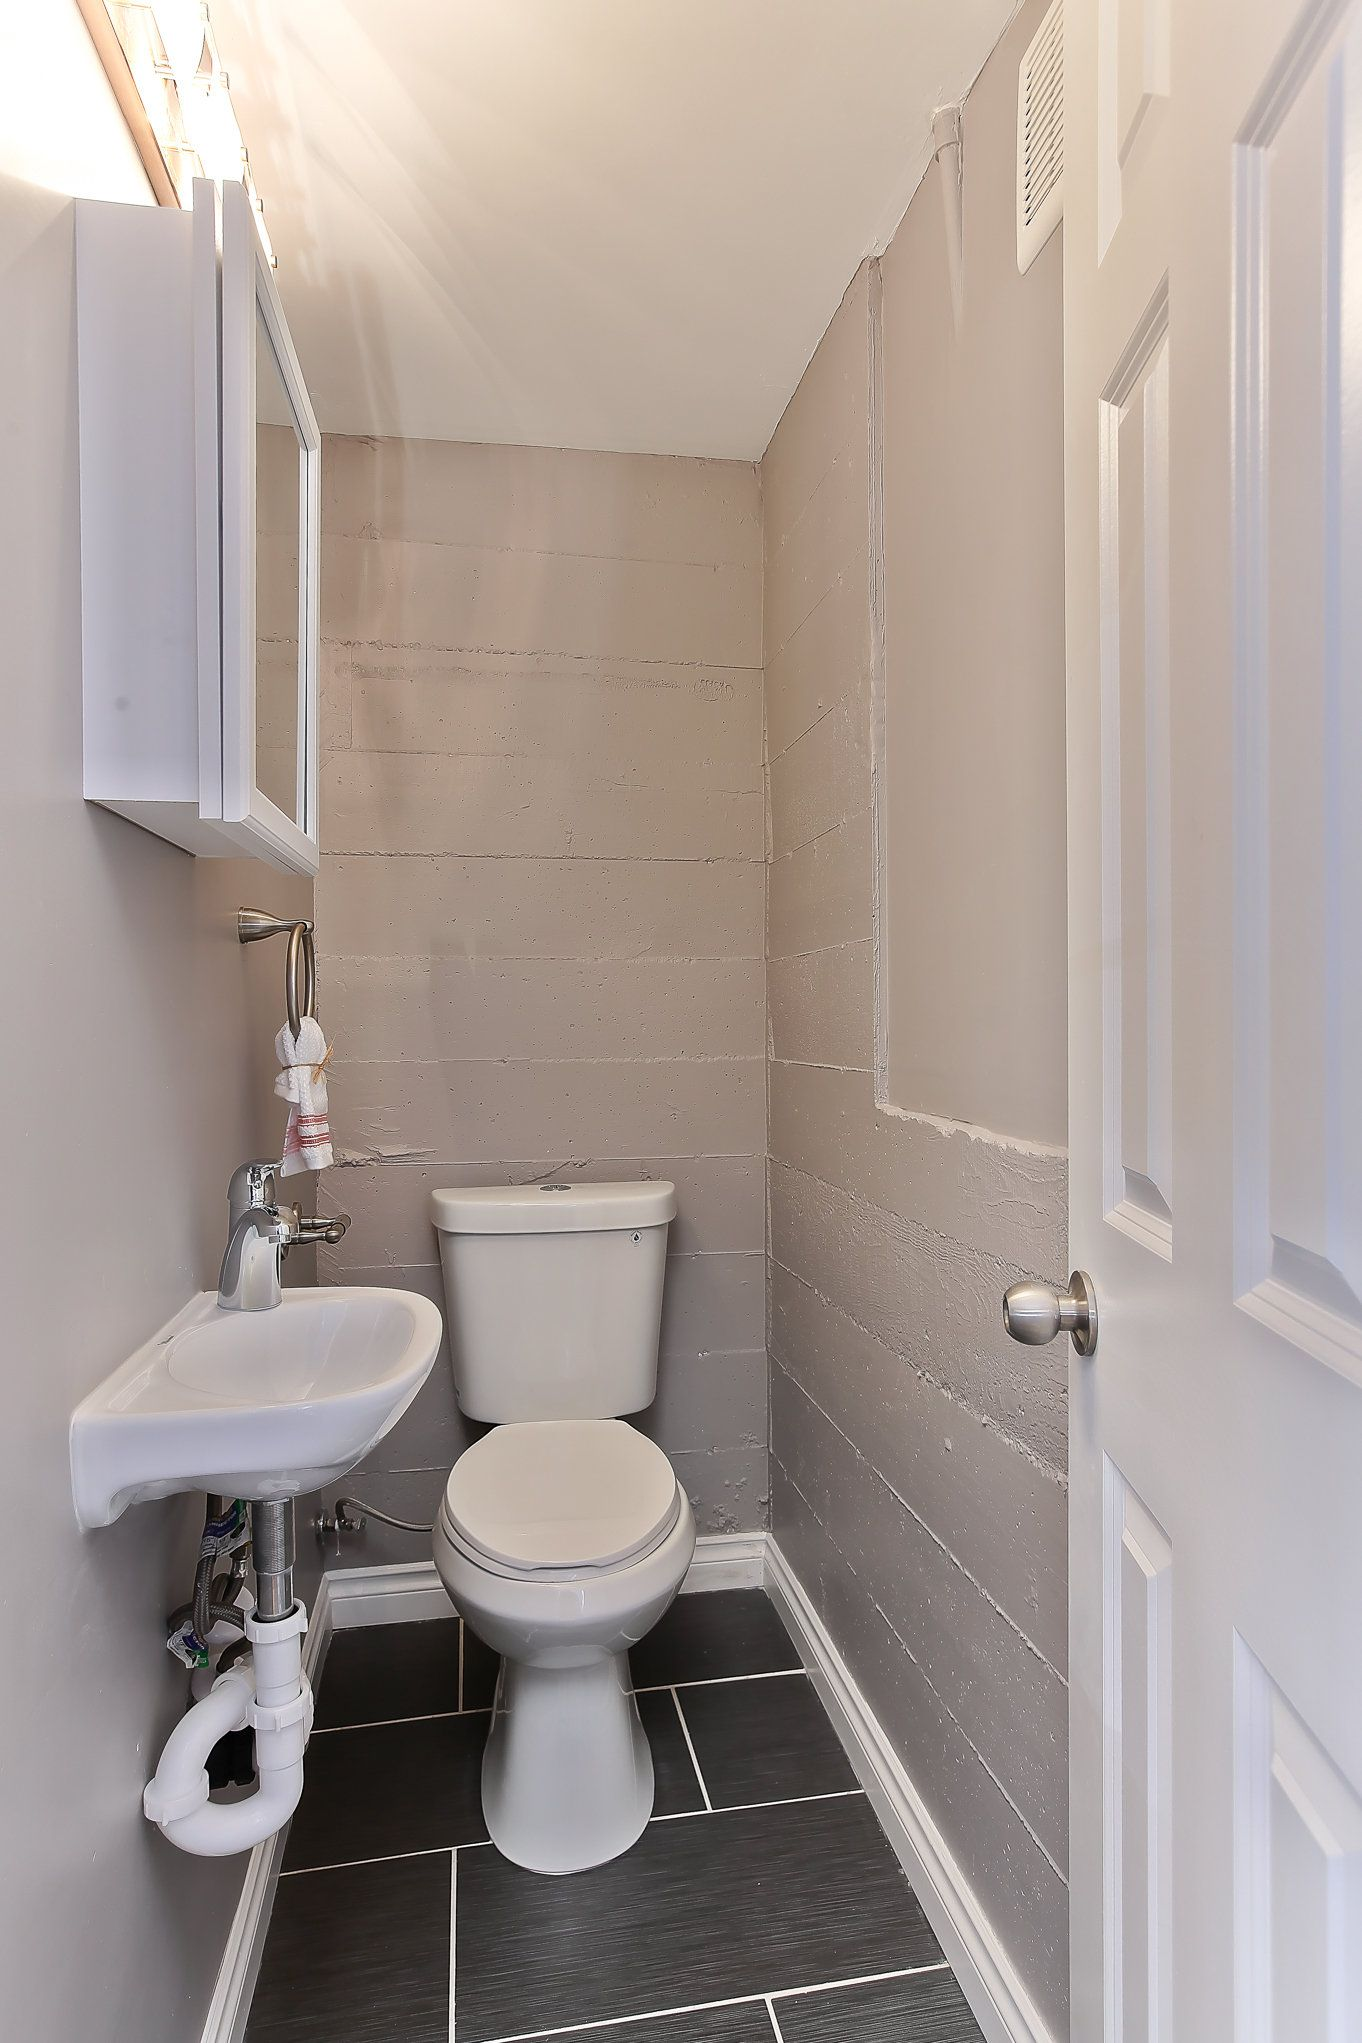 Half bath design and remodel by Jared Holland, JH Realty